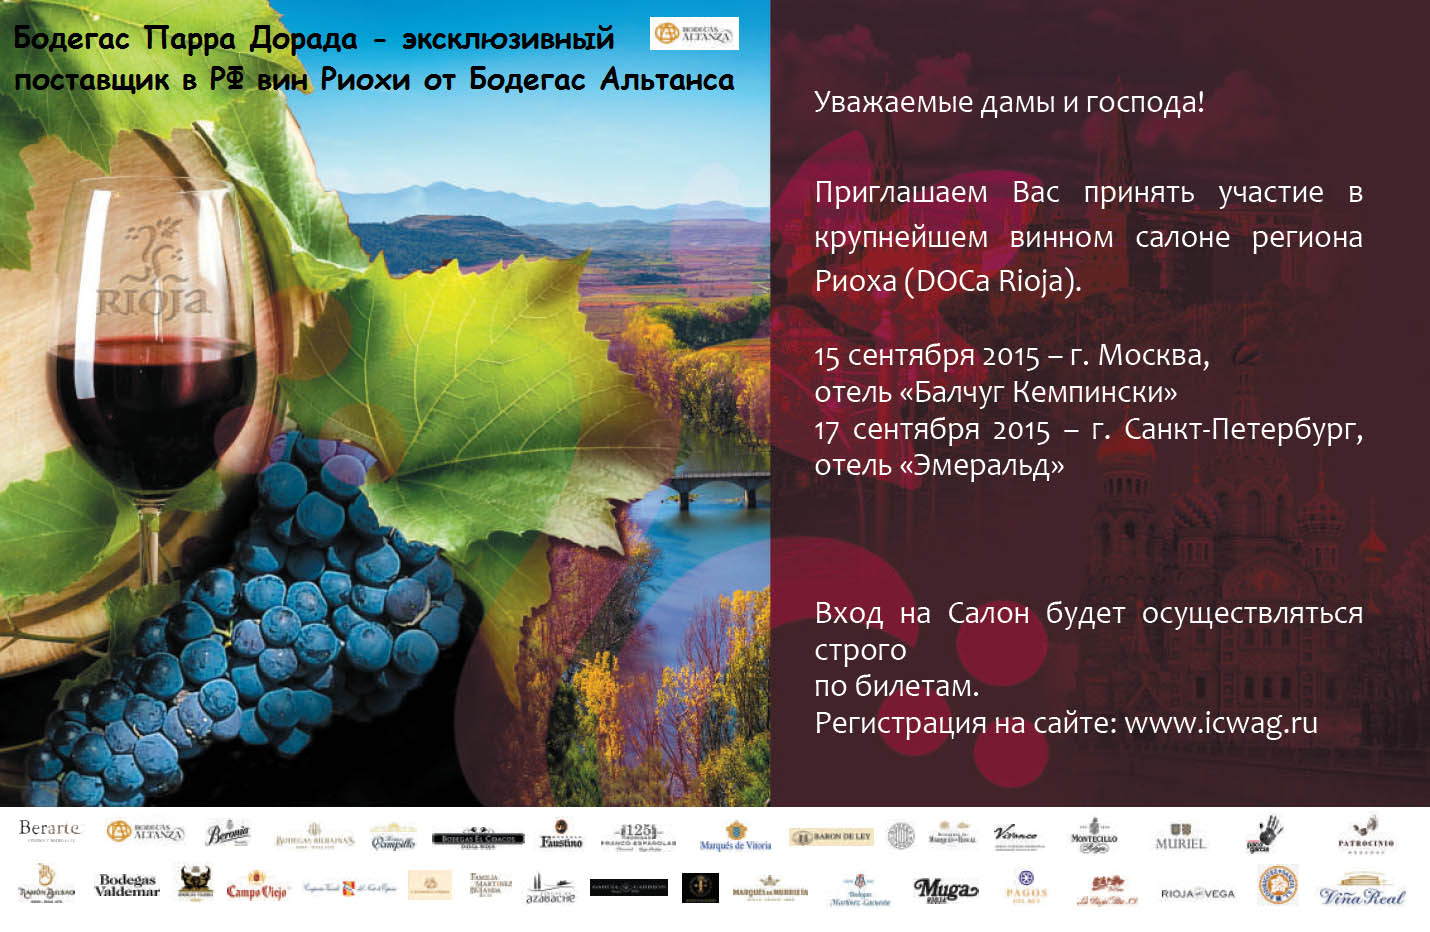 ~ Invitation to the salon of wine. 15 and 17 September 2015